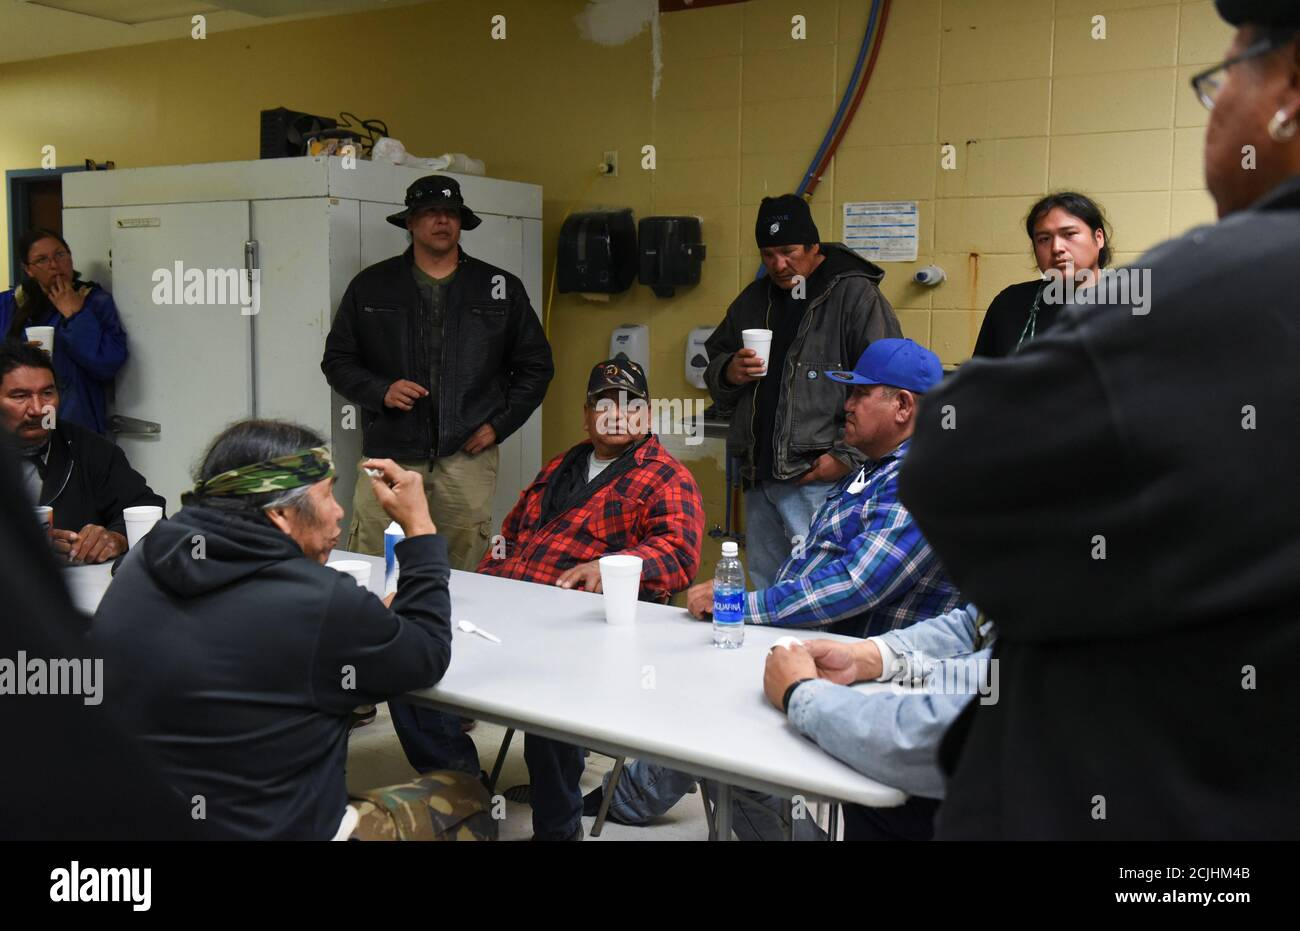 "Ivan Lookinghorse (C) and other Fort Laramie treaty riders meet in the kitchen of the Rockyford School gymnasium on the Pine Ridge Reservation in Rockyford, South Dakota, U.S., April 20, 2018. ""Understand that we, as a people, we have been in poverty, we have been in depression, we have been Christianised, we have been boarding schooled, our language has been taken away from us, but we are on our way back to who we once were,"" Lookinghorse said. ""We are standing up on our two feet,"" he continued ""We are taking our place in the world, the protectors of the Grandmother Earth."" REUTERS/Stephanie  Stock Photo"